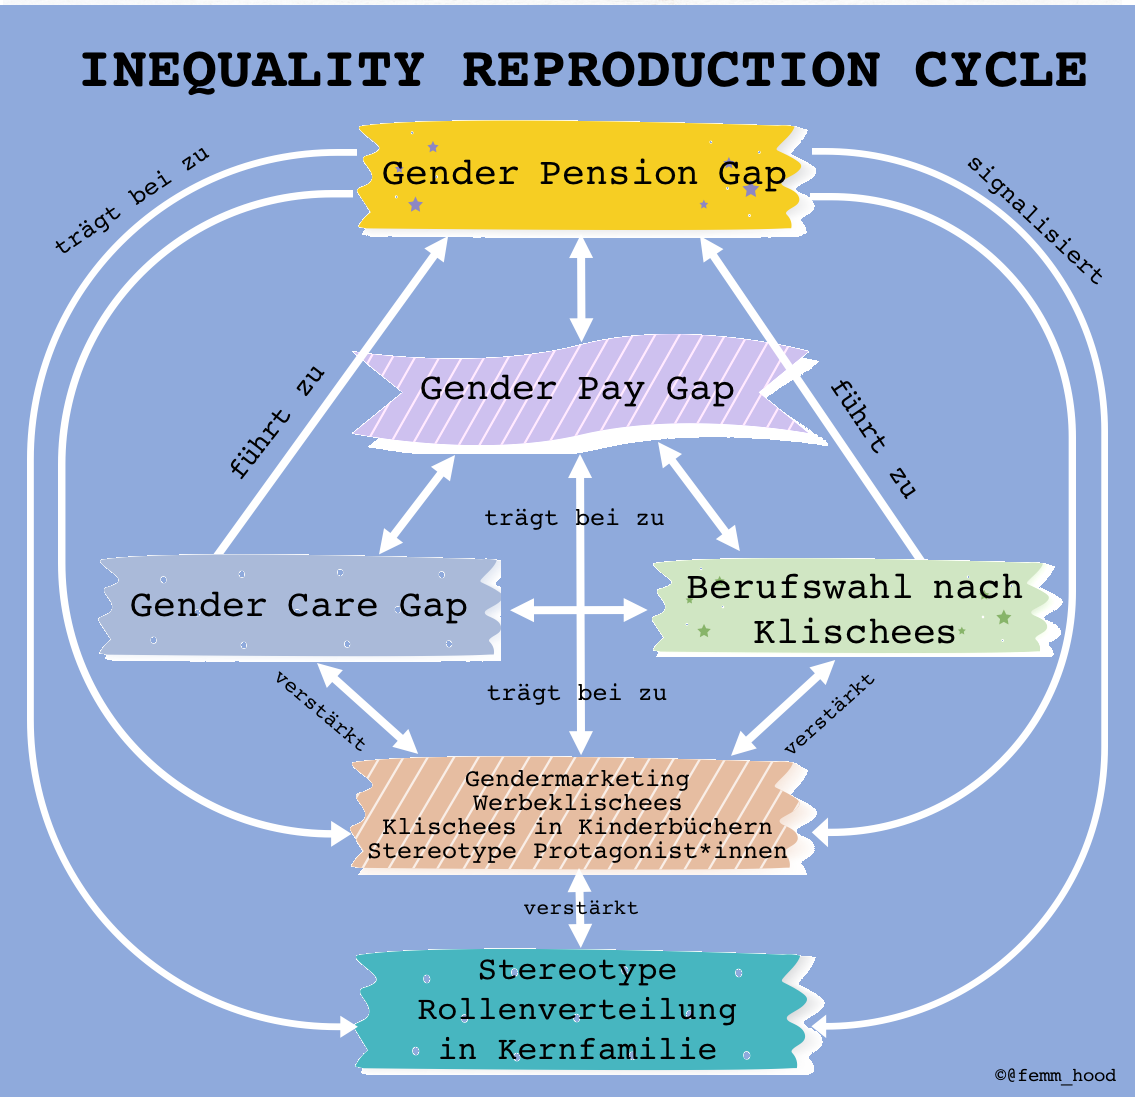 Inequality Reproduction Cycle